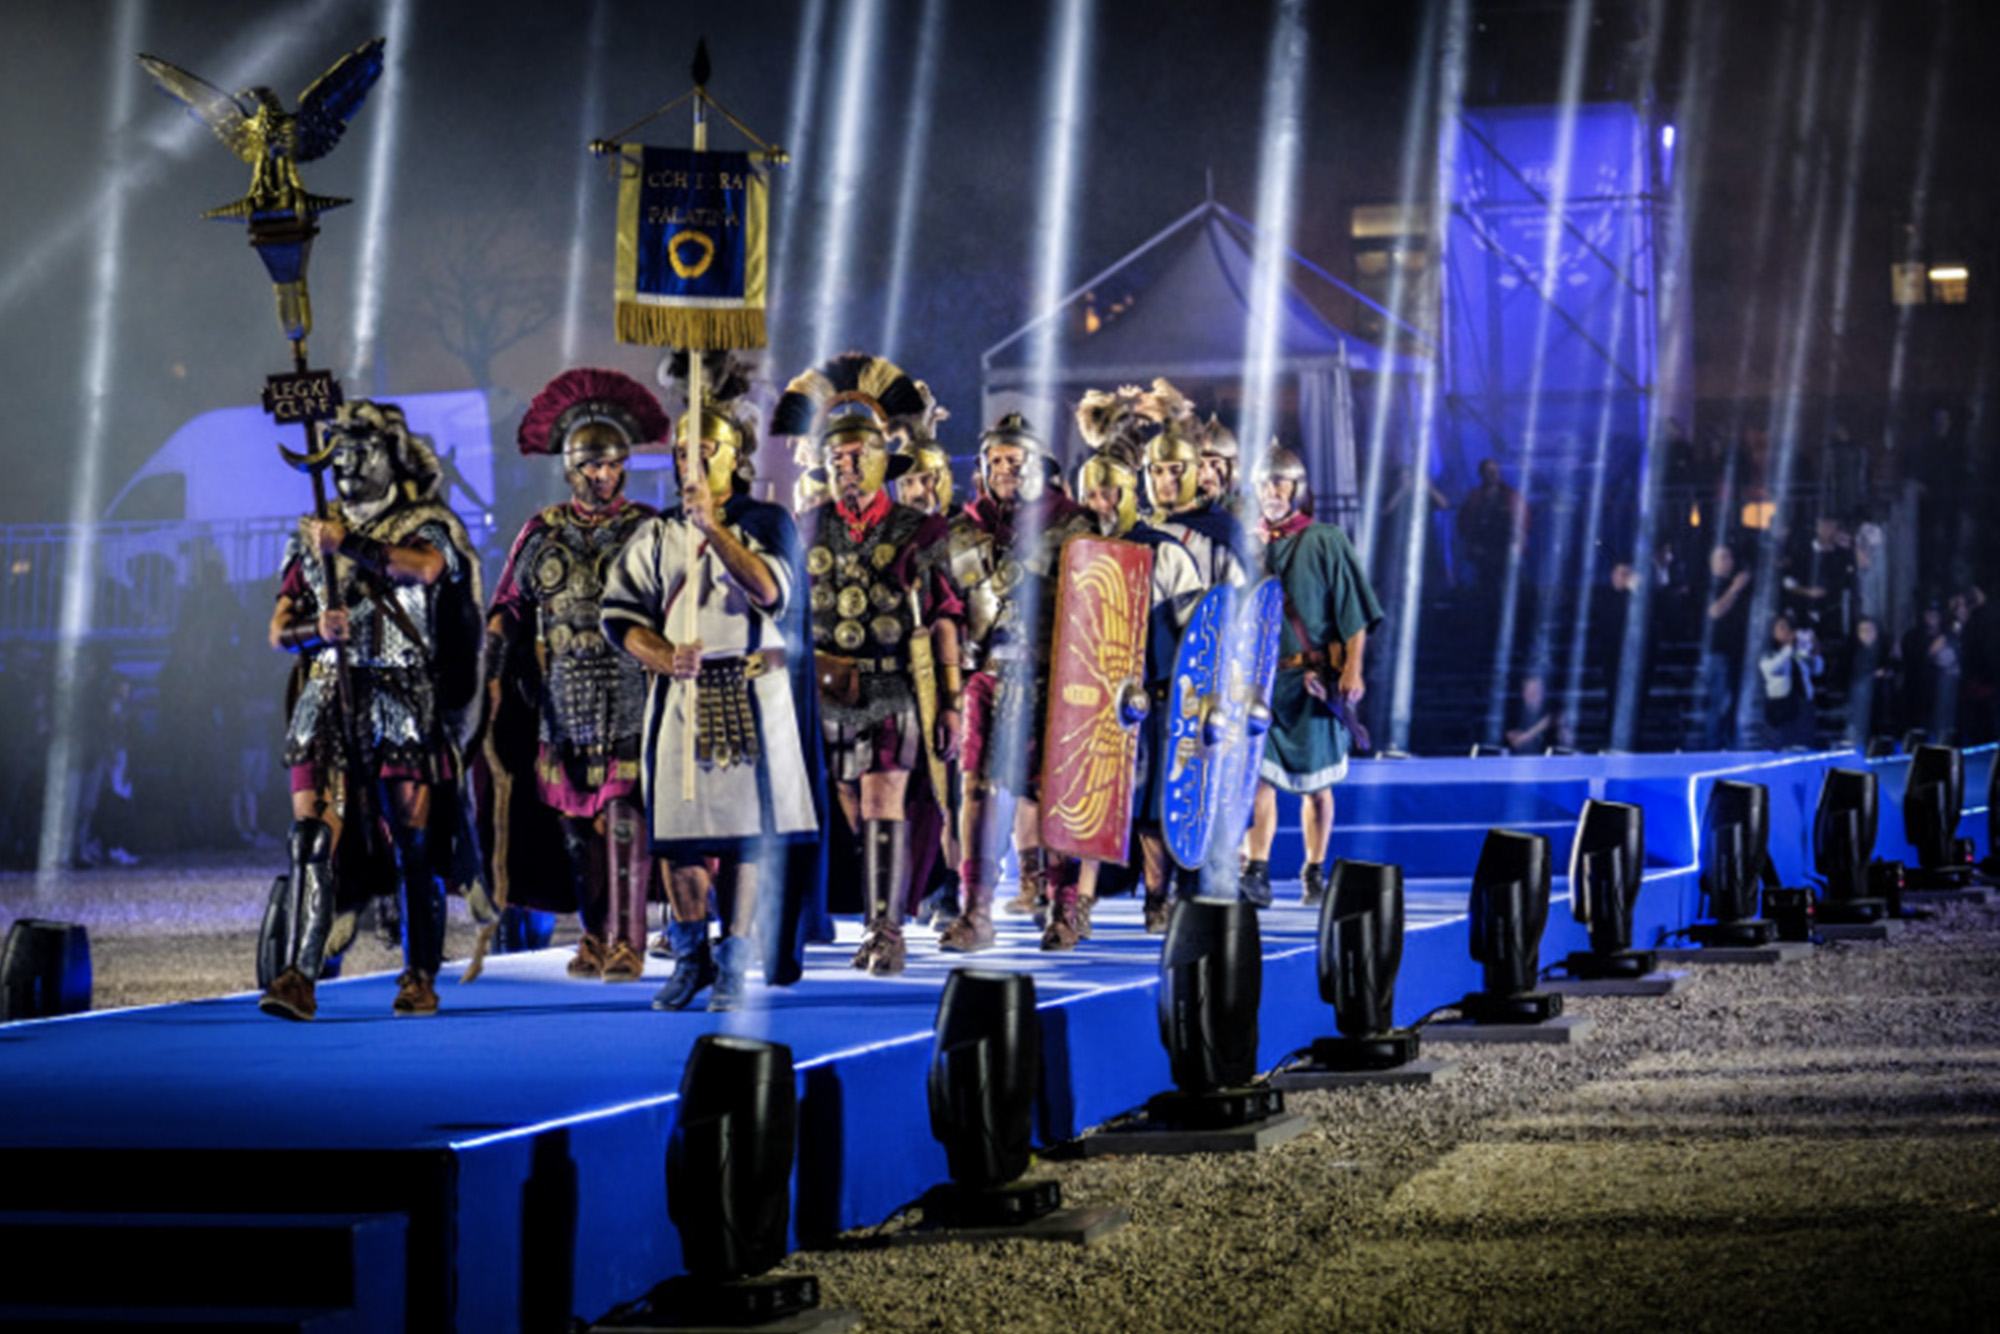 Roman centurions at the opening ceremony to the 2019 FIA Motorsport Games